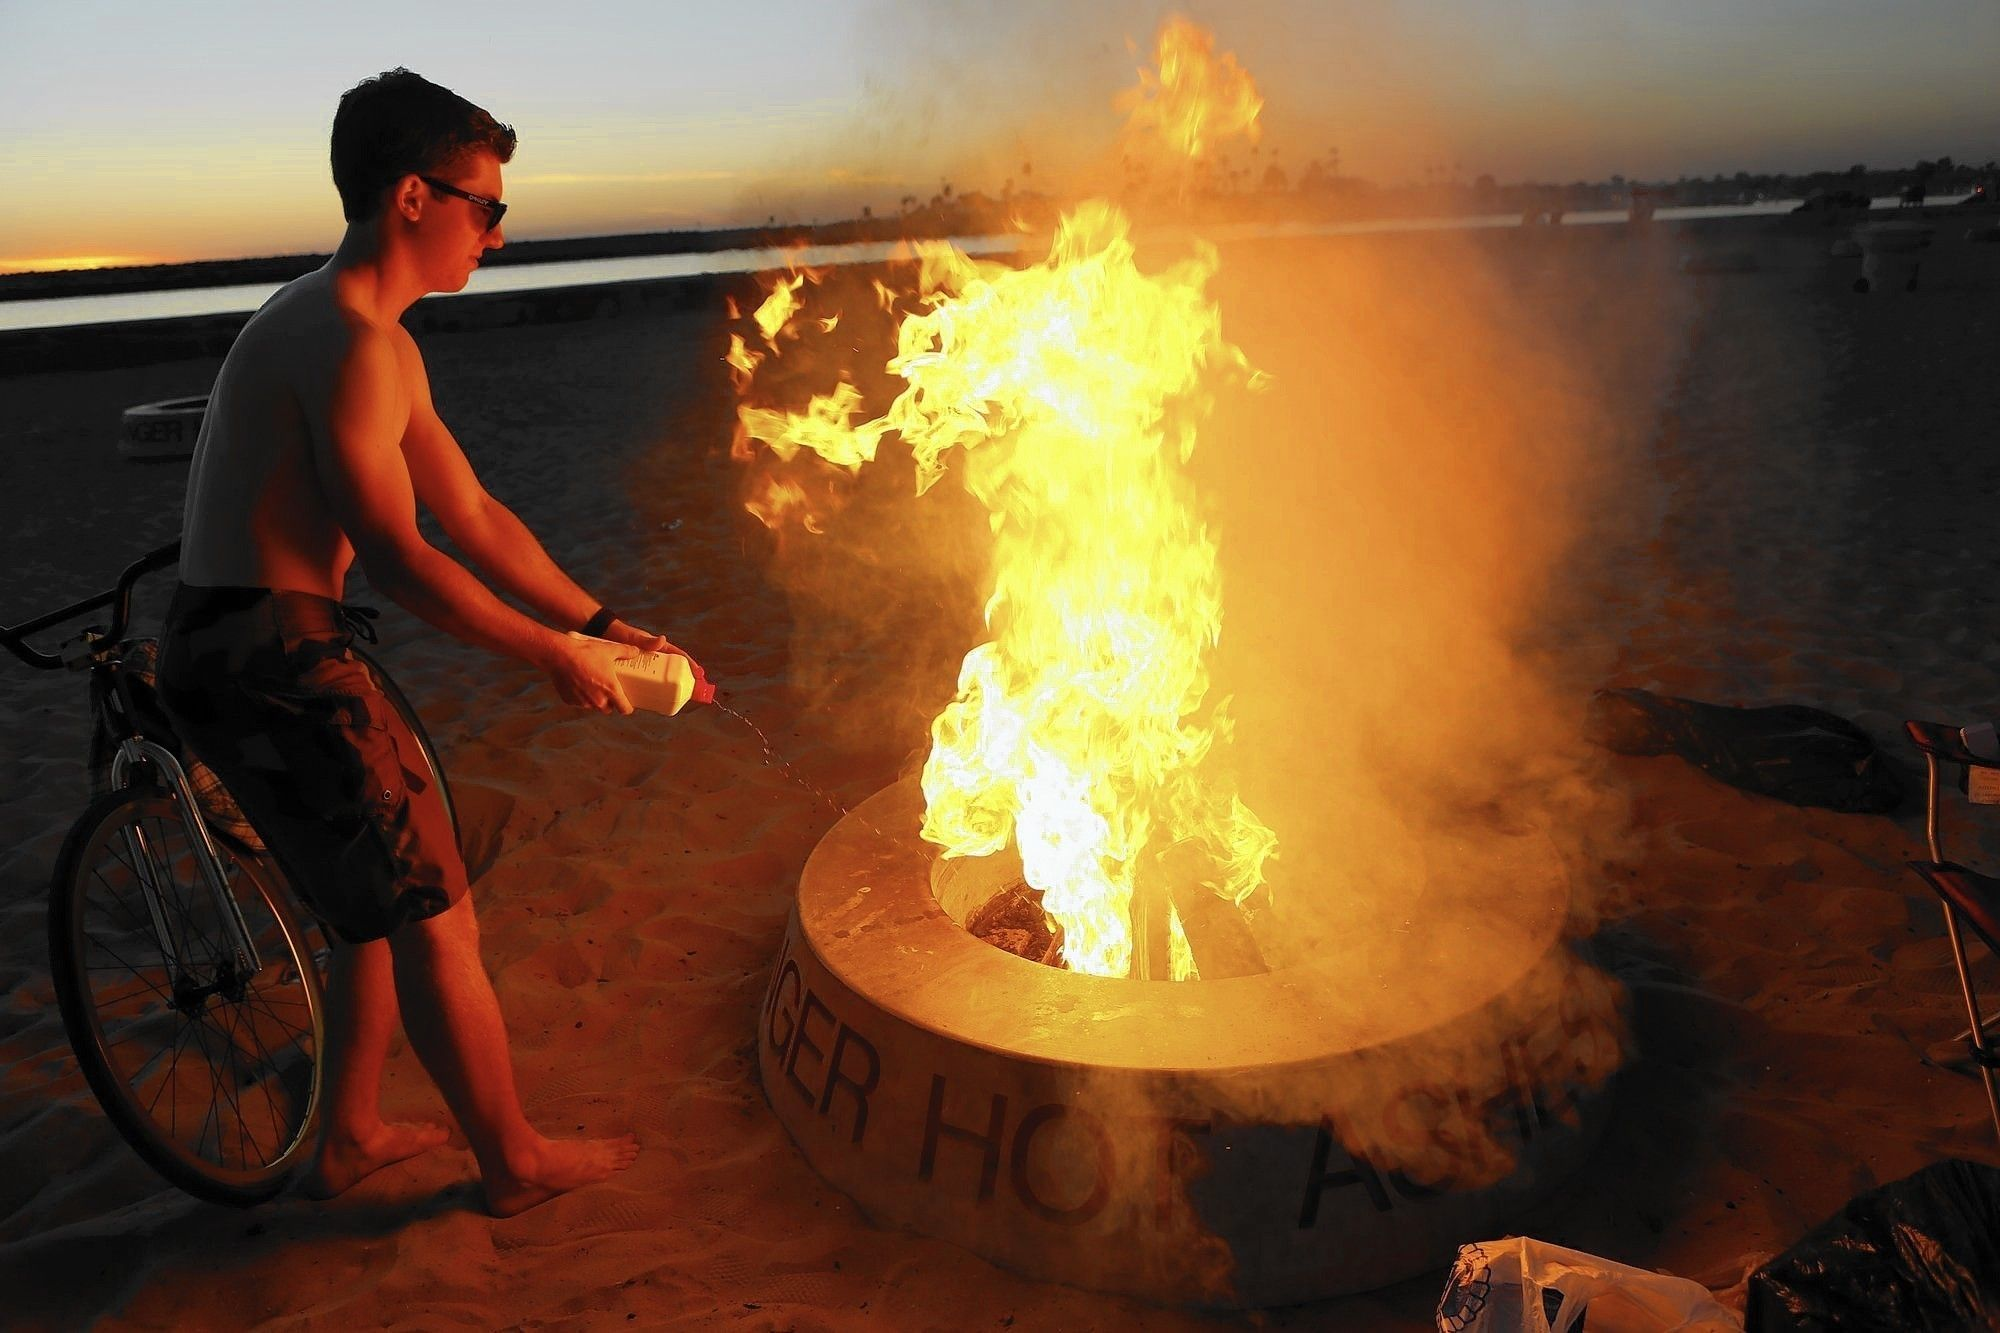 Newport Beach's fire rings comply with air quality rules